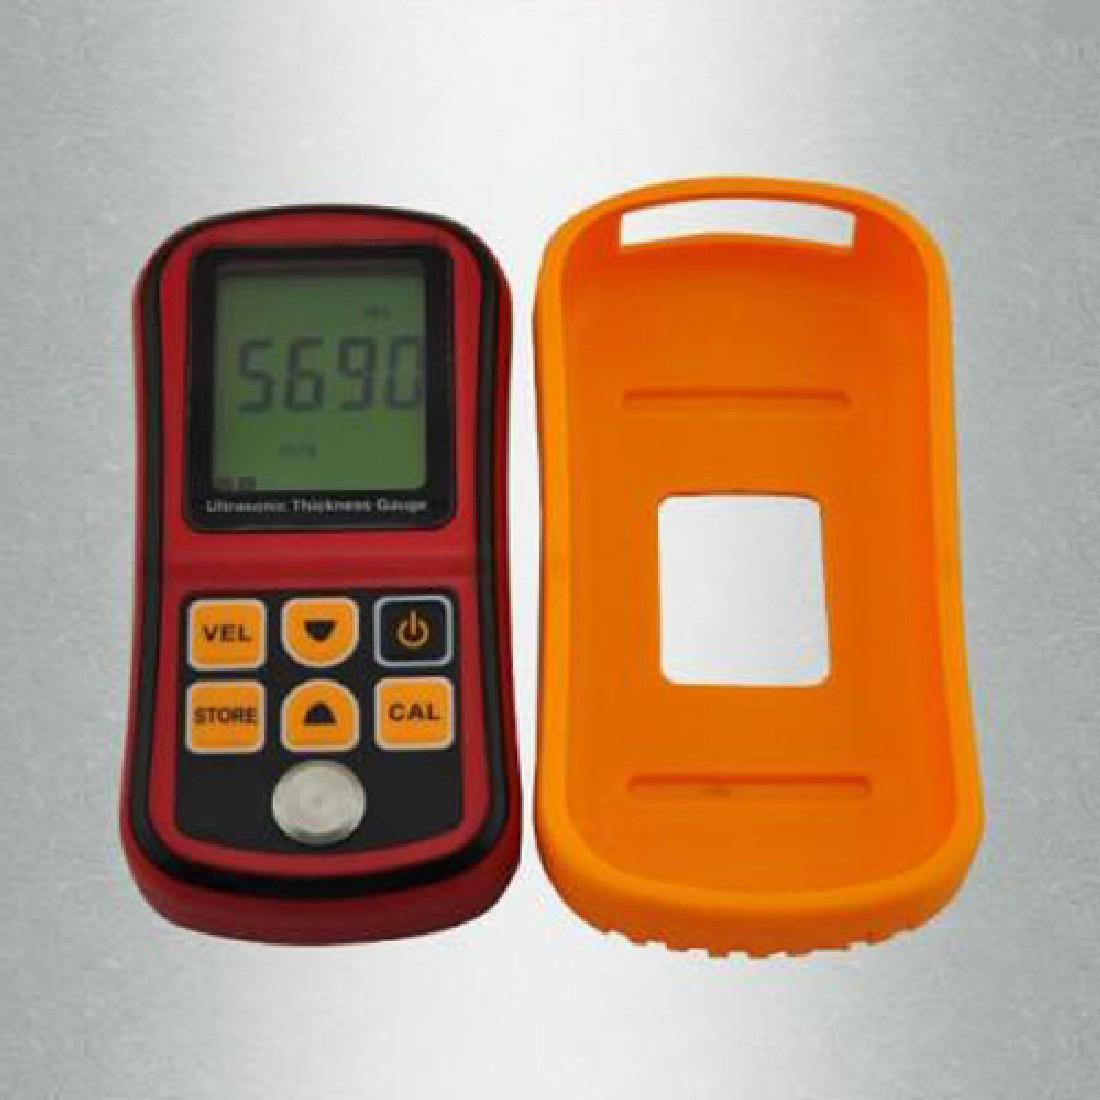 Gm100 Ultrasonic Wall Thickness Gauge Meter Tester Limited Coating Thickness Gauge Steel Pvc Digital Testing ultrasonic thickness gauge smart sensor ar850 1 2 225mm digital wall thickness meter